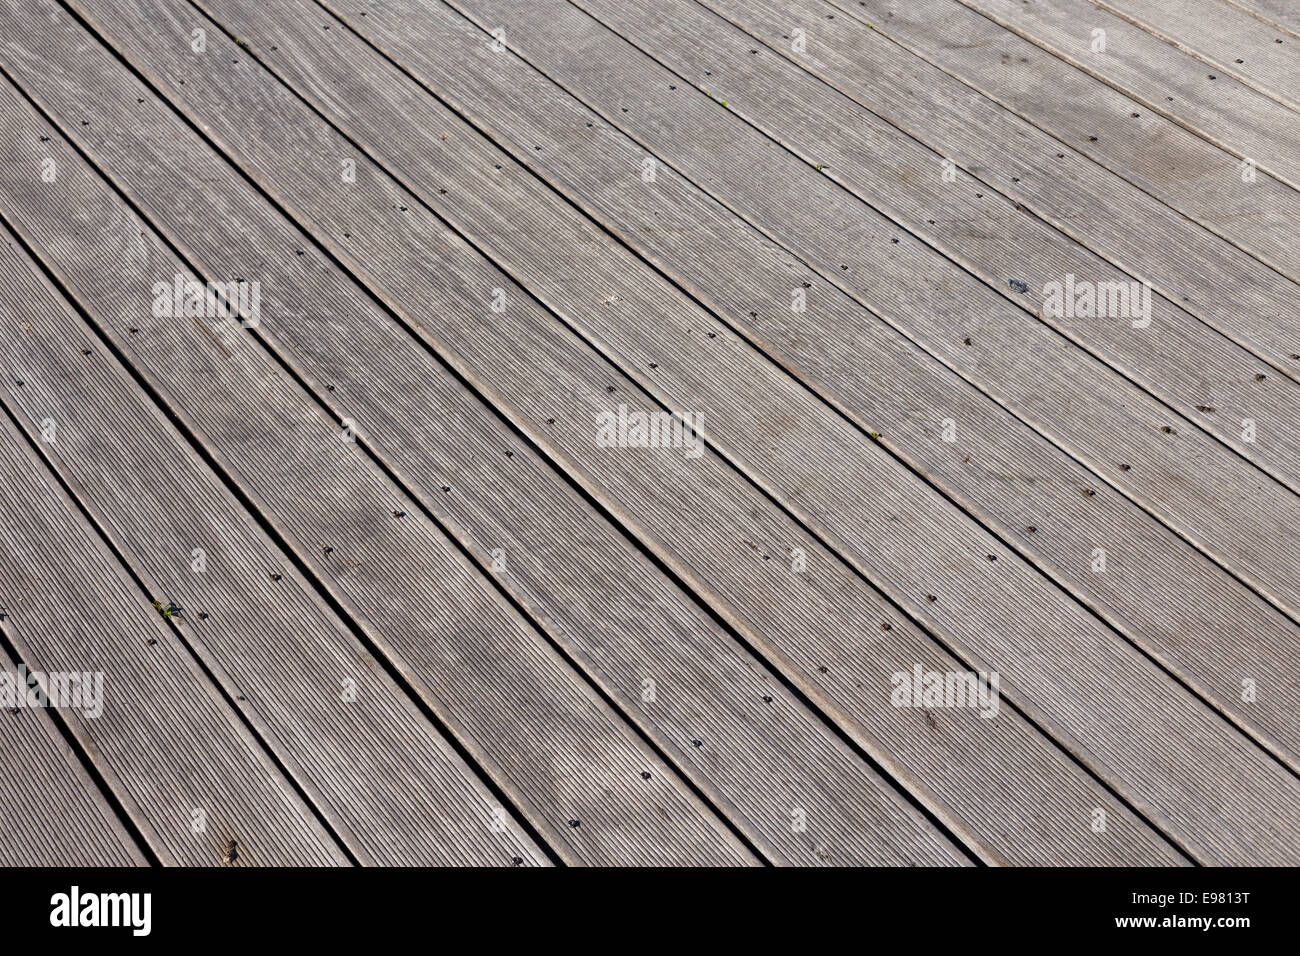 Wood Floor For Outdoor As A Texture Background